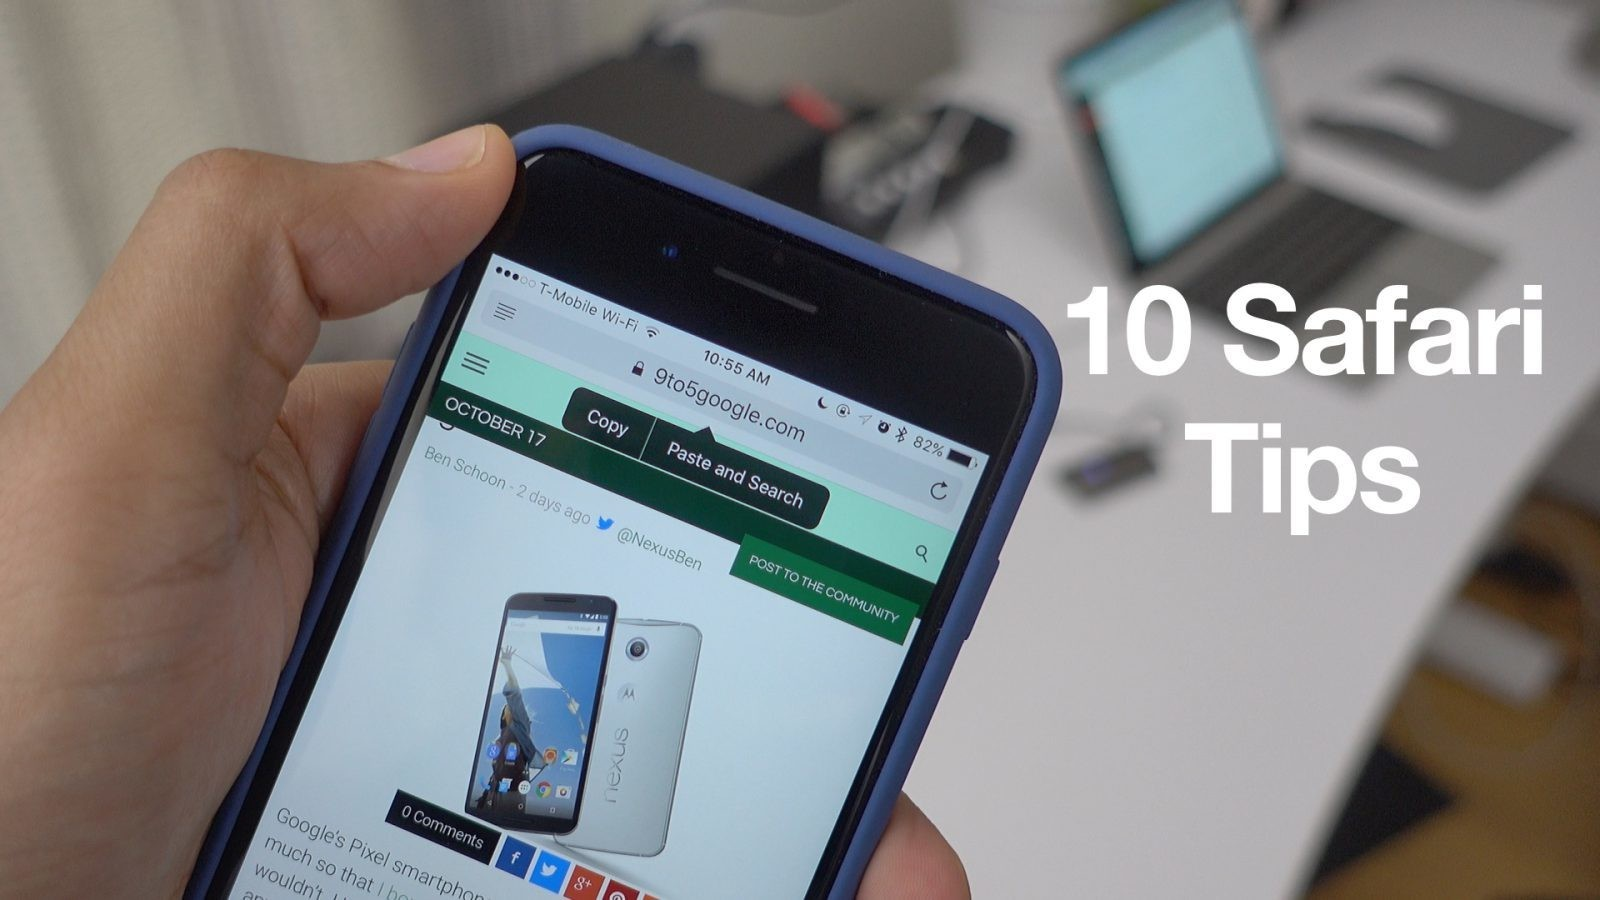 10 handy Safari tips that every iOS user should know